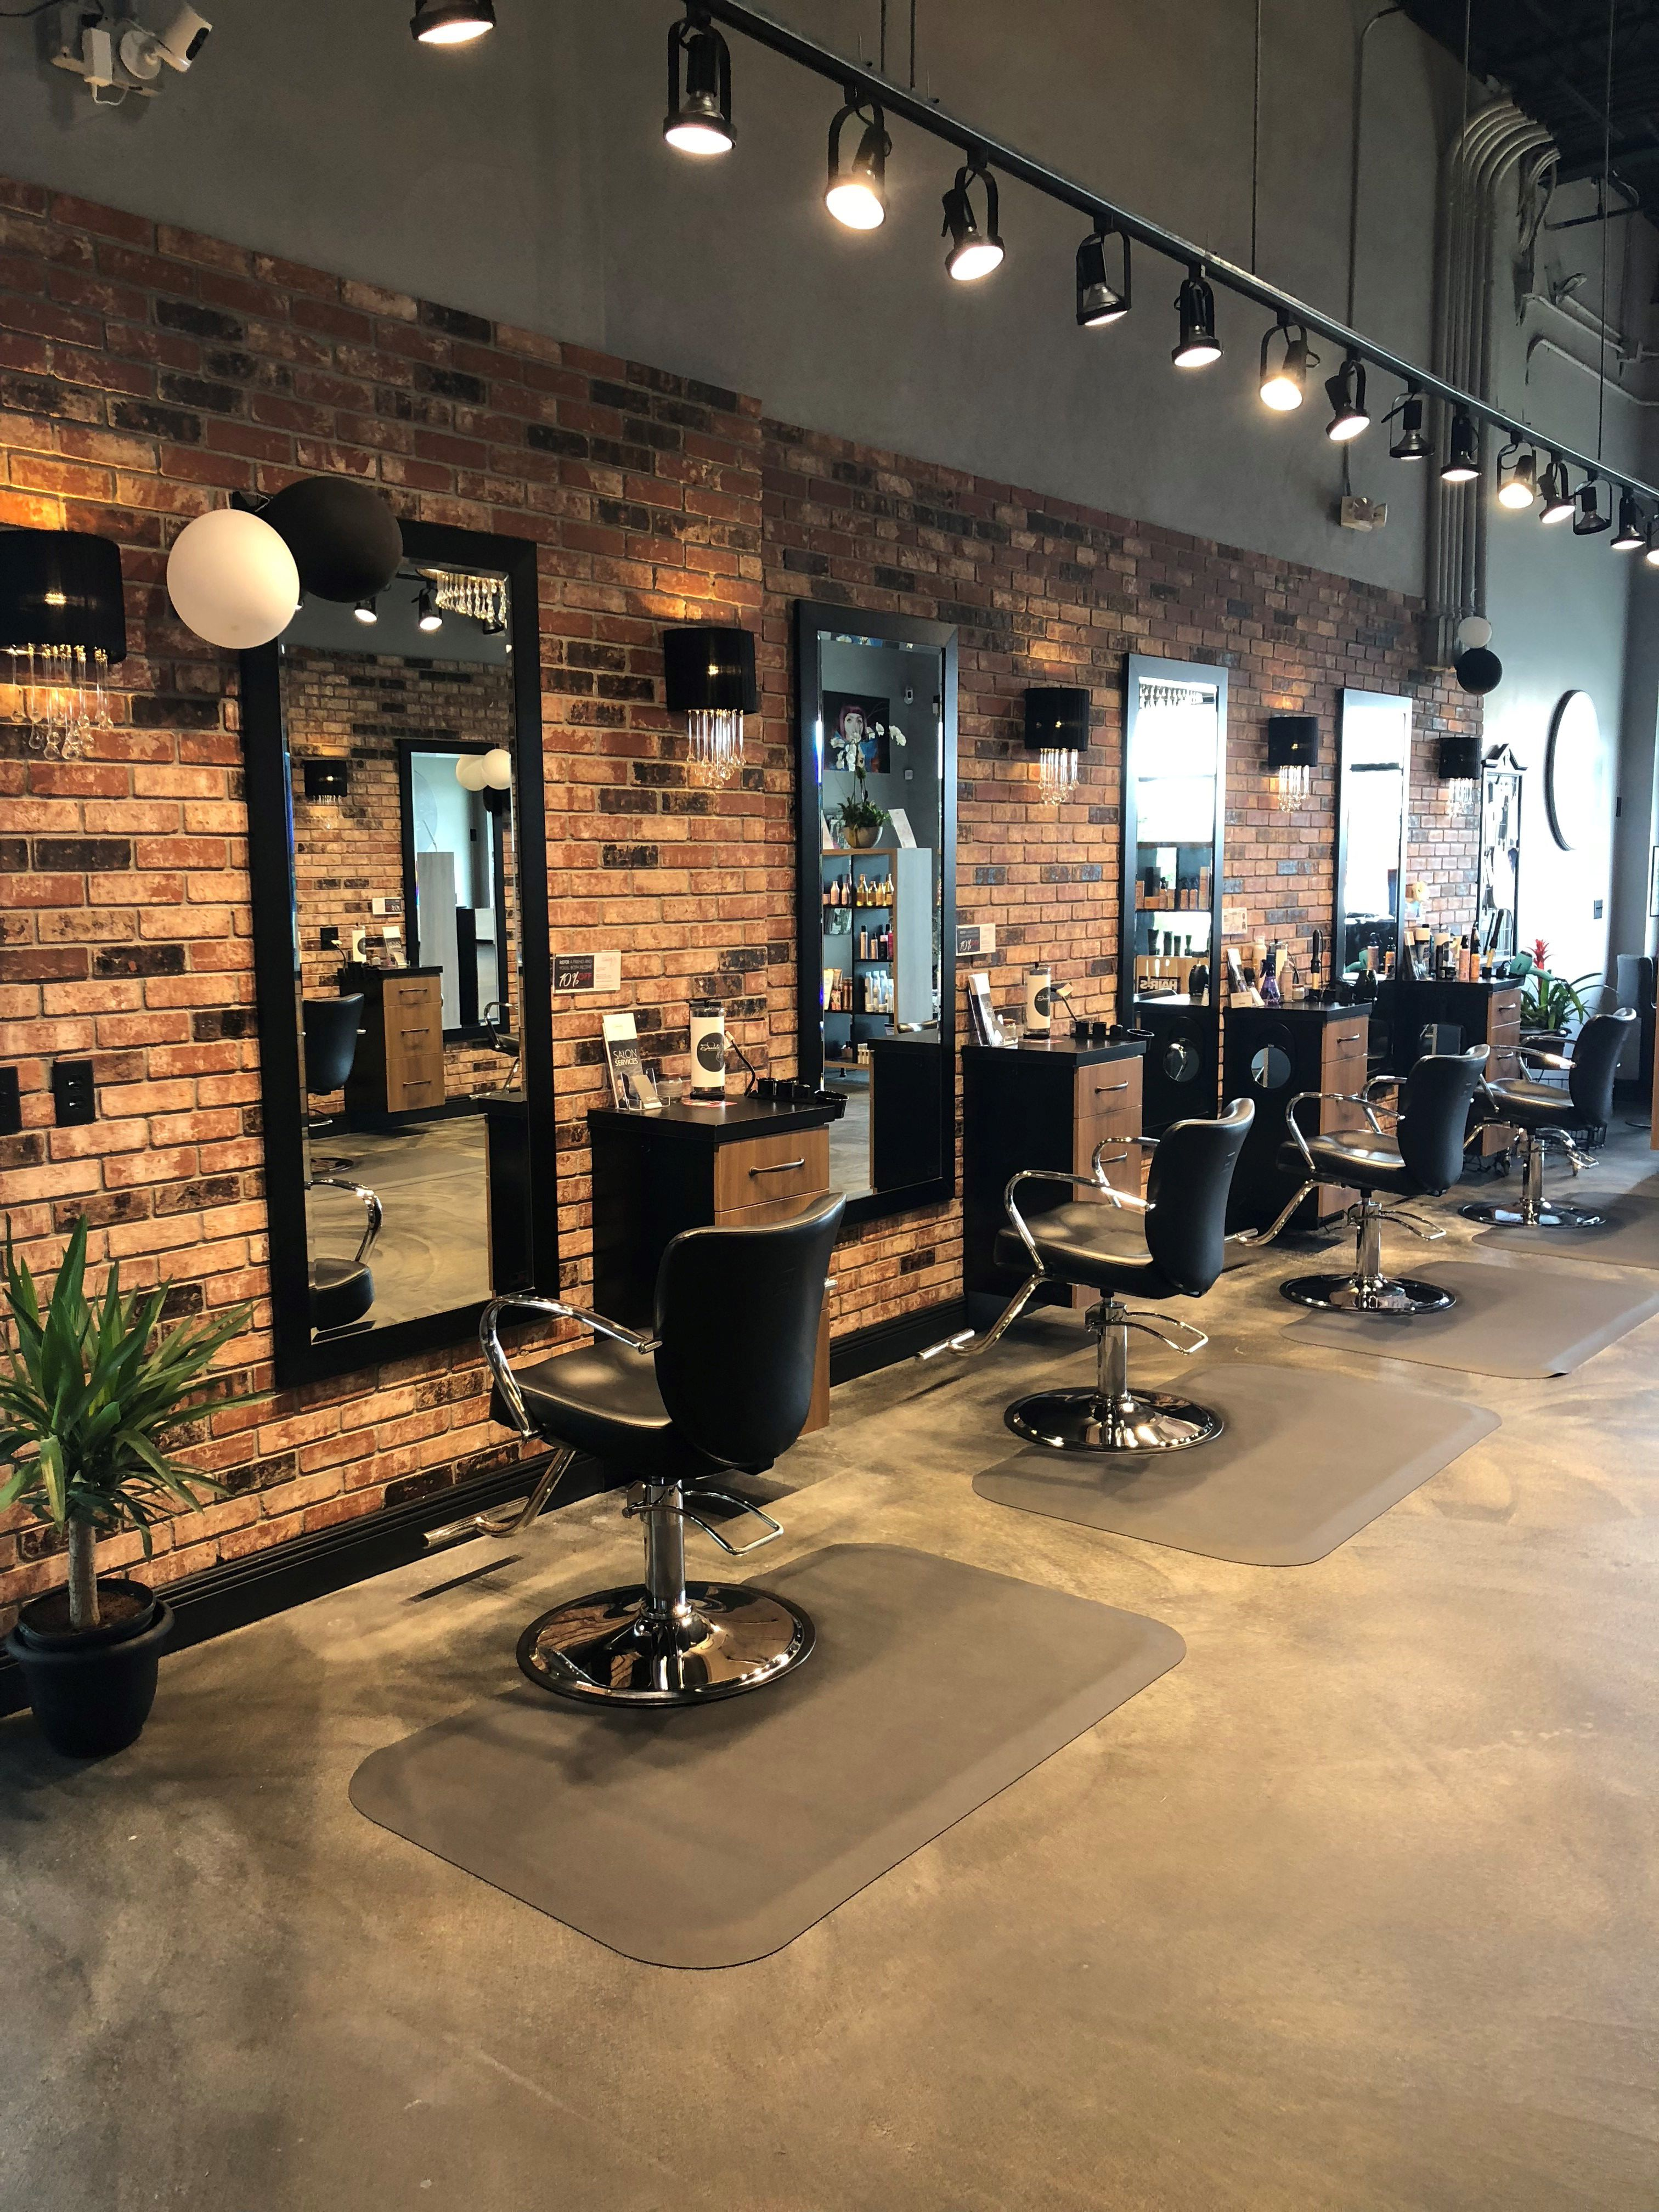 Hair Salon Daniela Altamonte Springs Fl Has Some Serious Salon Style Want To Transform Your Salon En Hair Salon Interior Hair Salon Decor Home Hair Salons